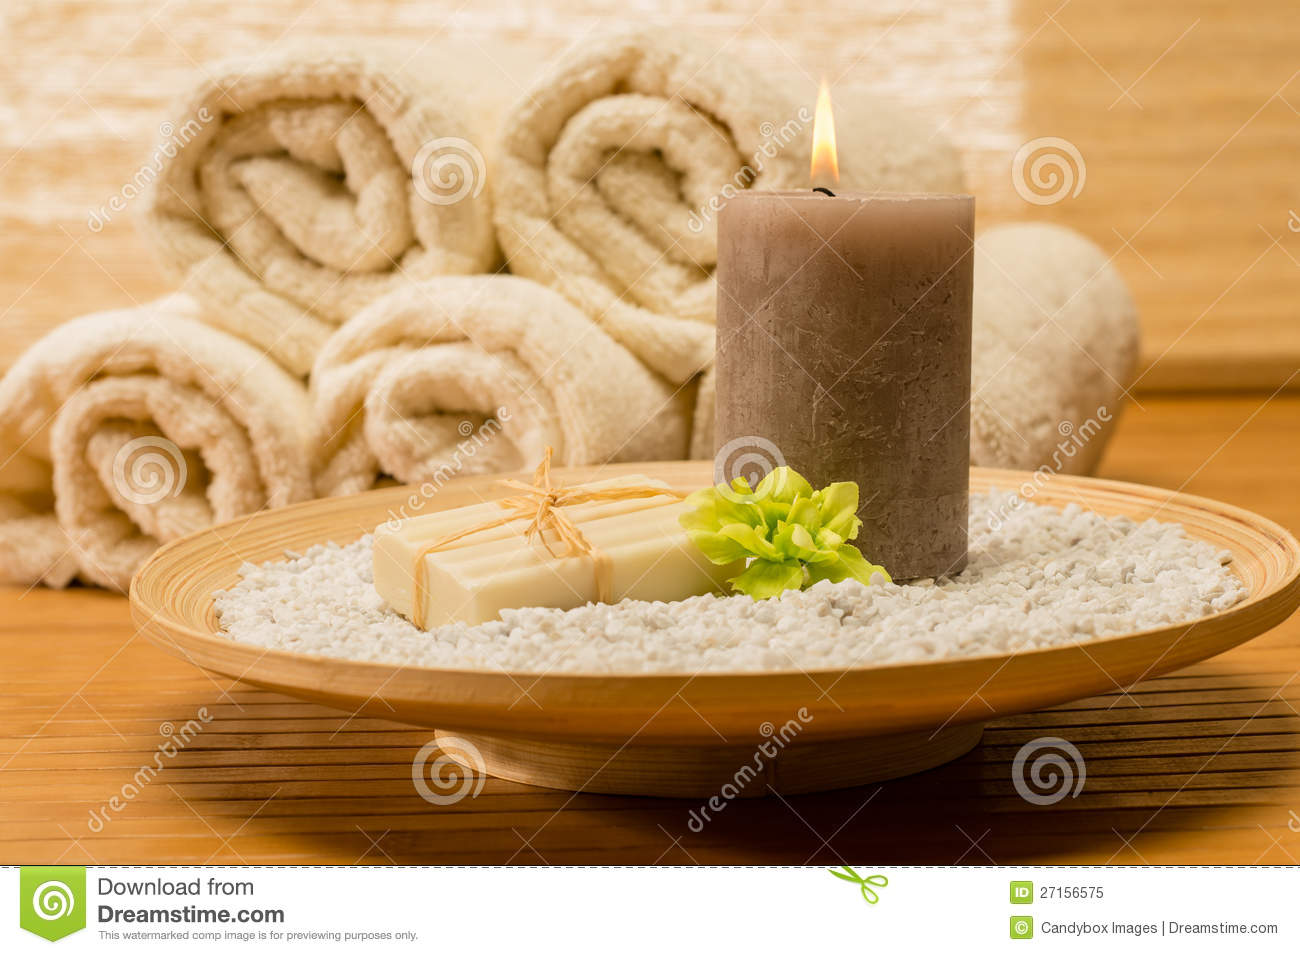 spa decor wooden tray with candle soap royalty free stock photo - Spa Decor